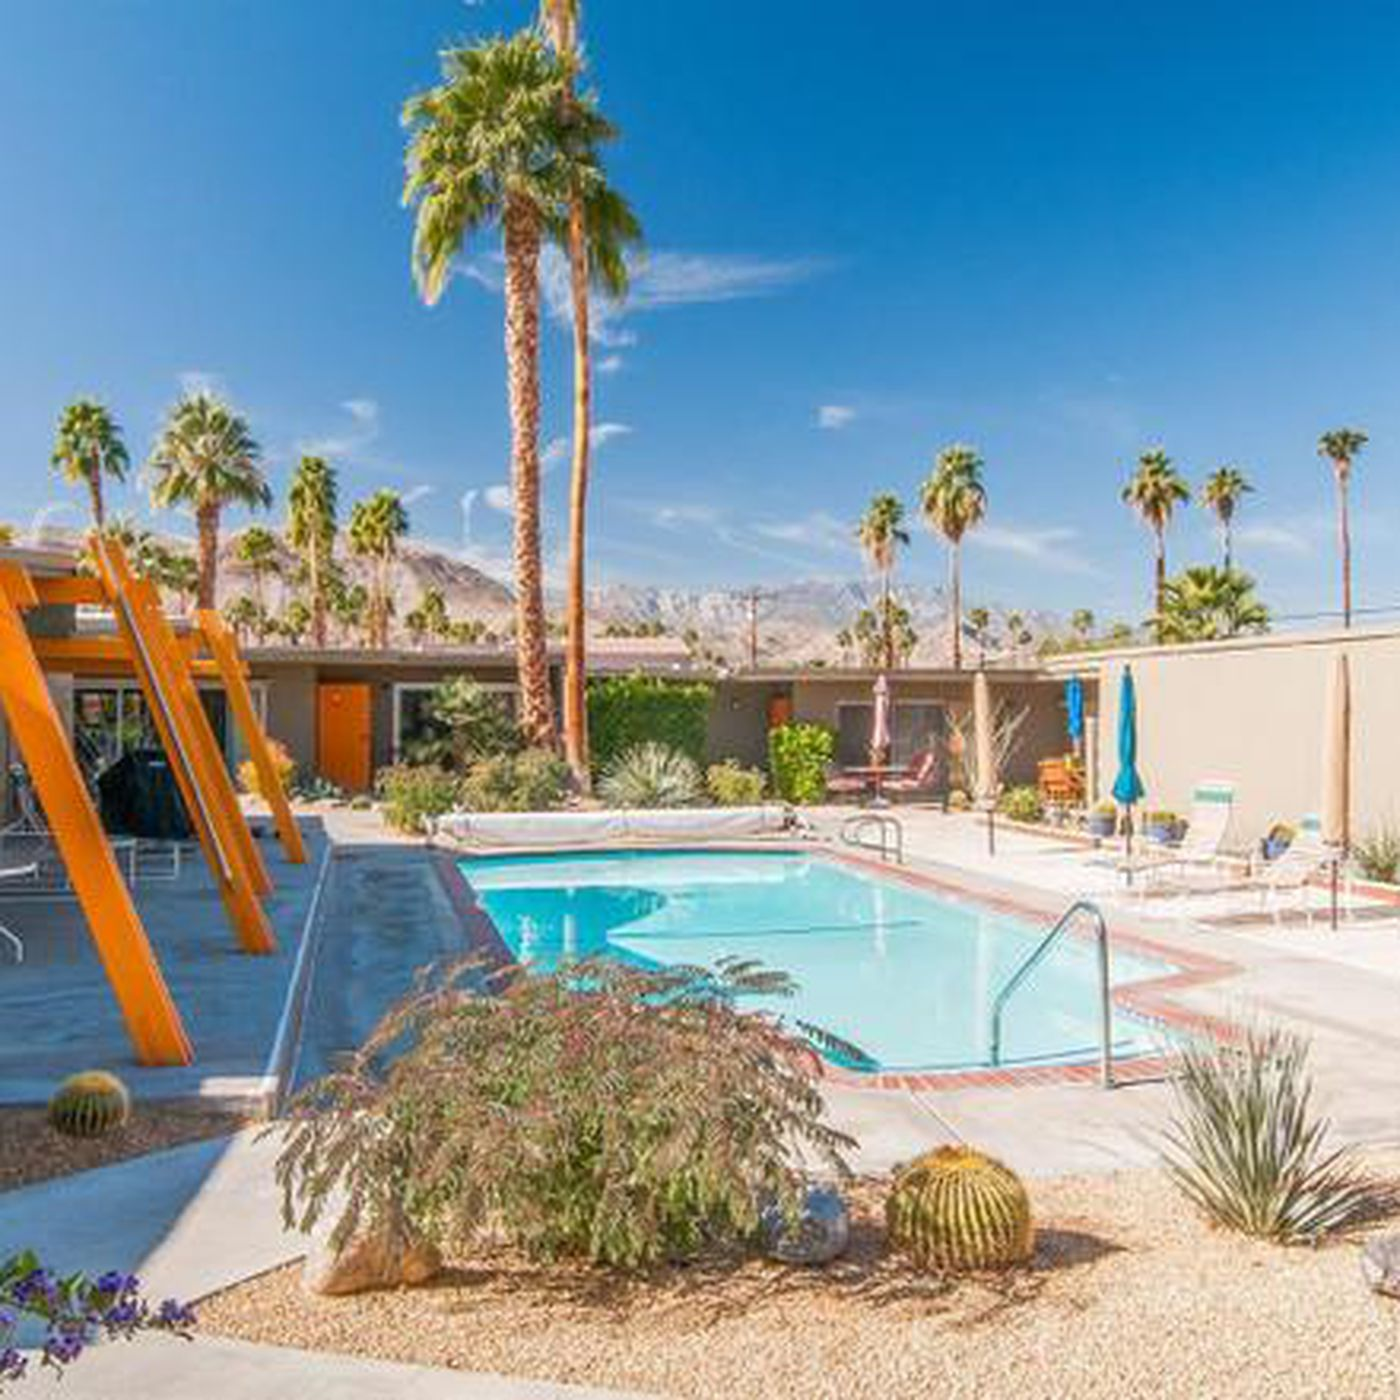 Desert homes for sale: What $250K buys in Palm Springs and beyond ...